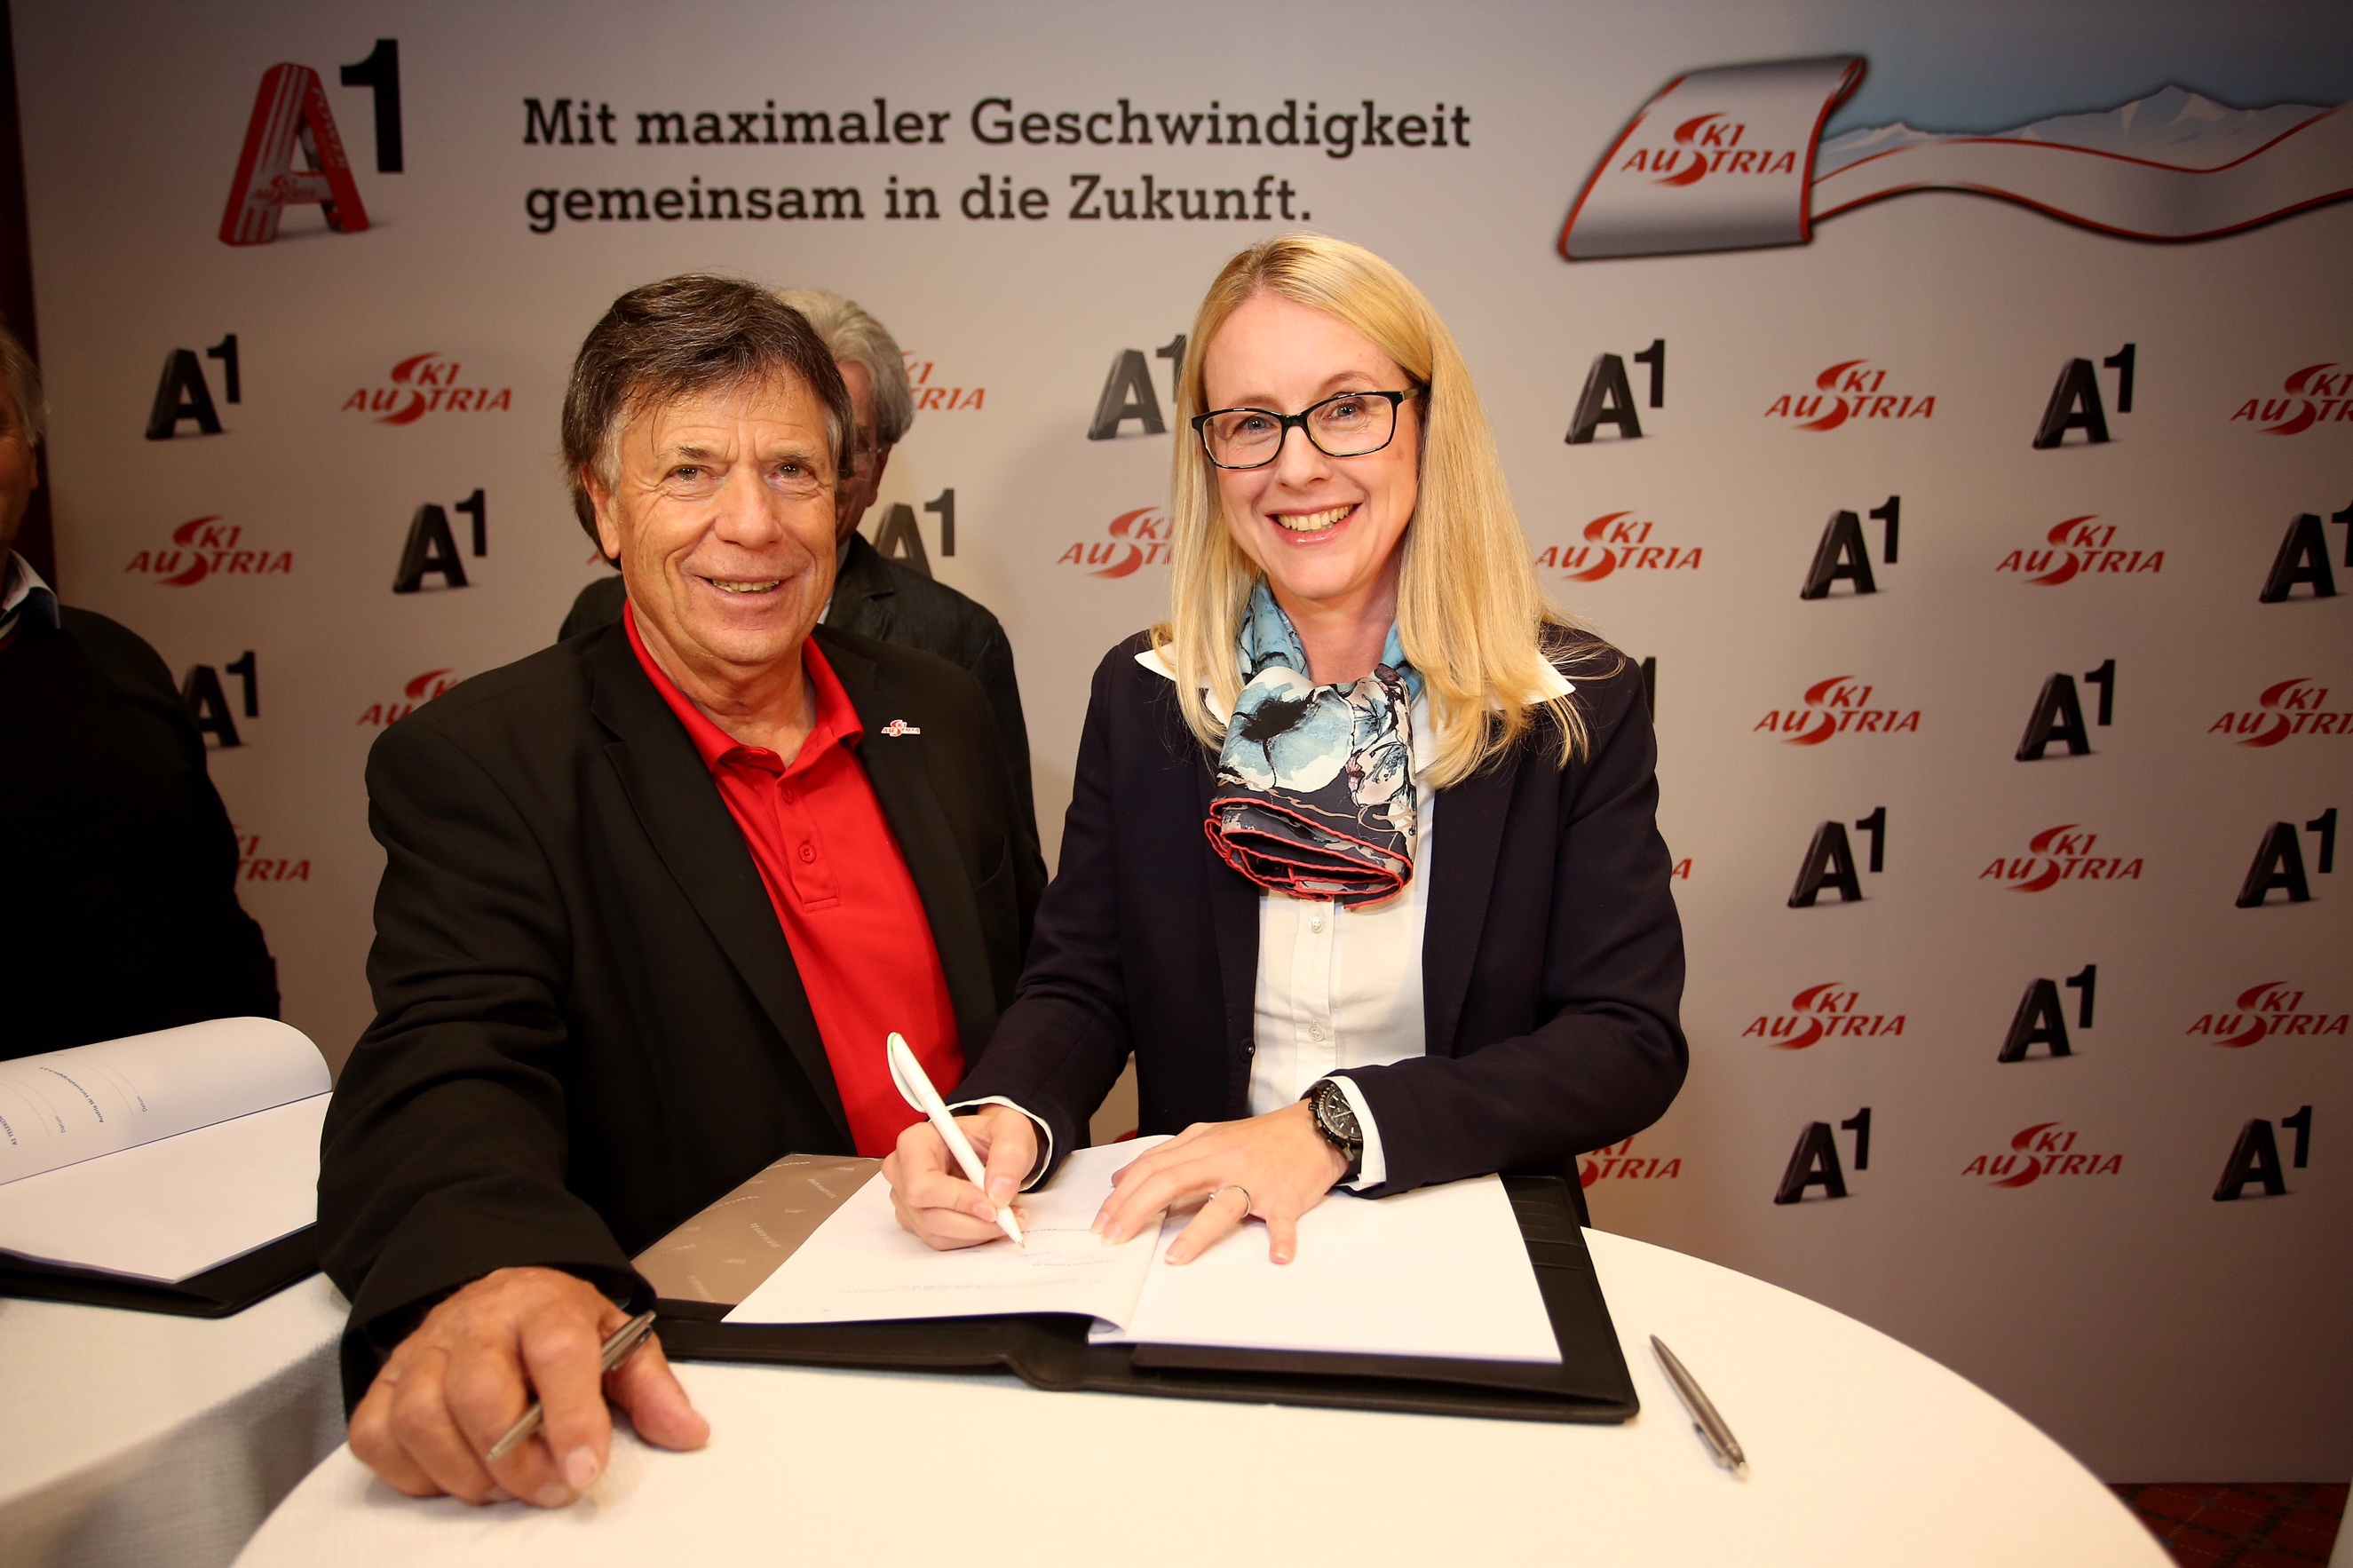 SOELDEN,AUSTRIA,21.OCT.16 - ALPINE SKIING - FIS World Cup season opening, Rettenbachferner, preview, OESV, Oesterreichischer Ski Verband, men, press conference. Image shows president Peter Schroecksnadel (OESV) and Margarete Schramboeck (A1). Photo: GEPA pictures/ Daniel Goetzhaber